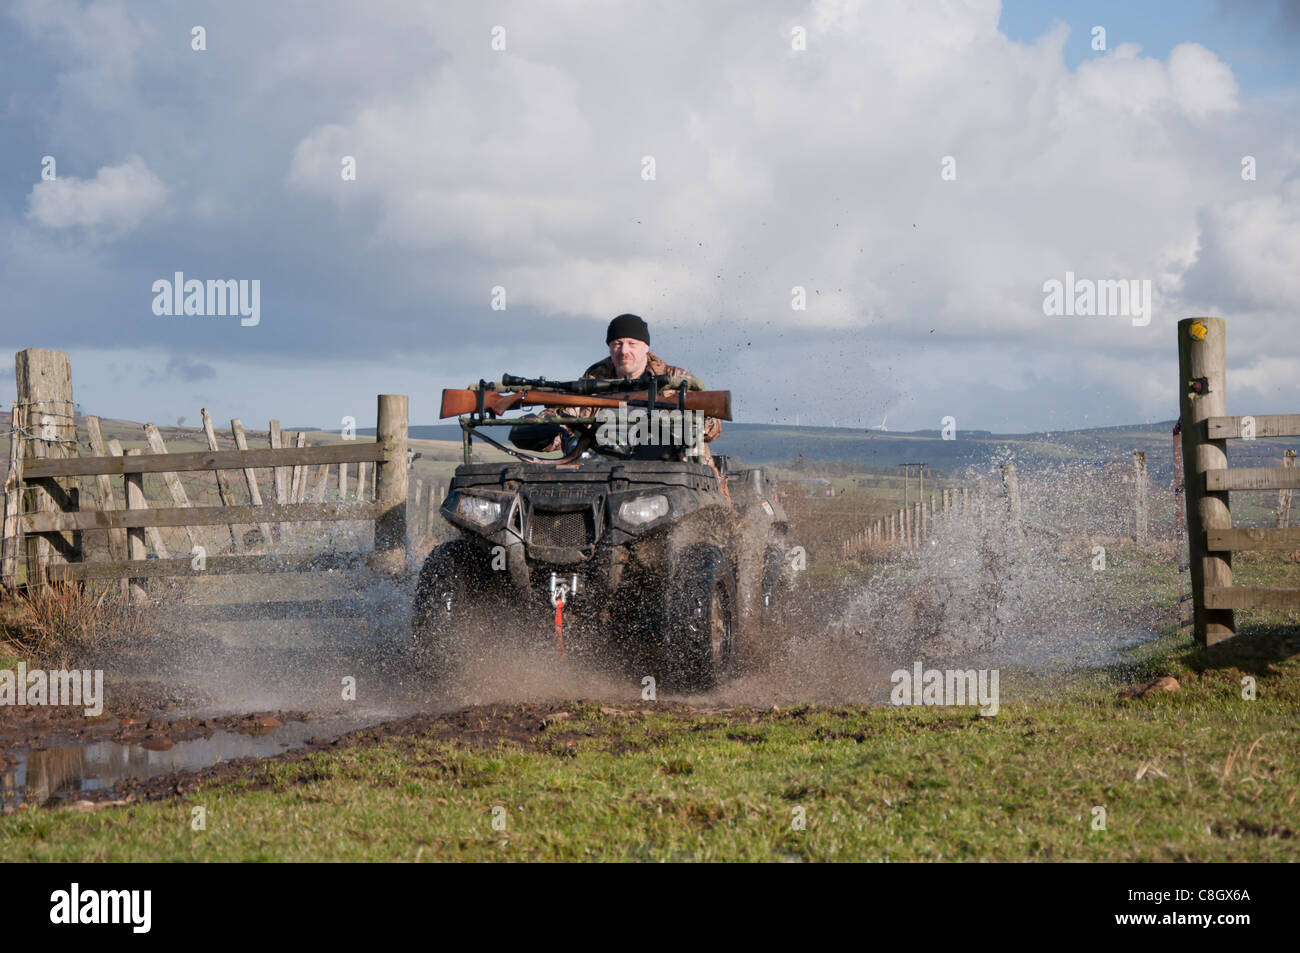 A man riding a quad bike (ATV) through a gate with water flying up from the wheels on an Autumn day, in Weardale - Stock Image